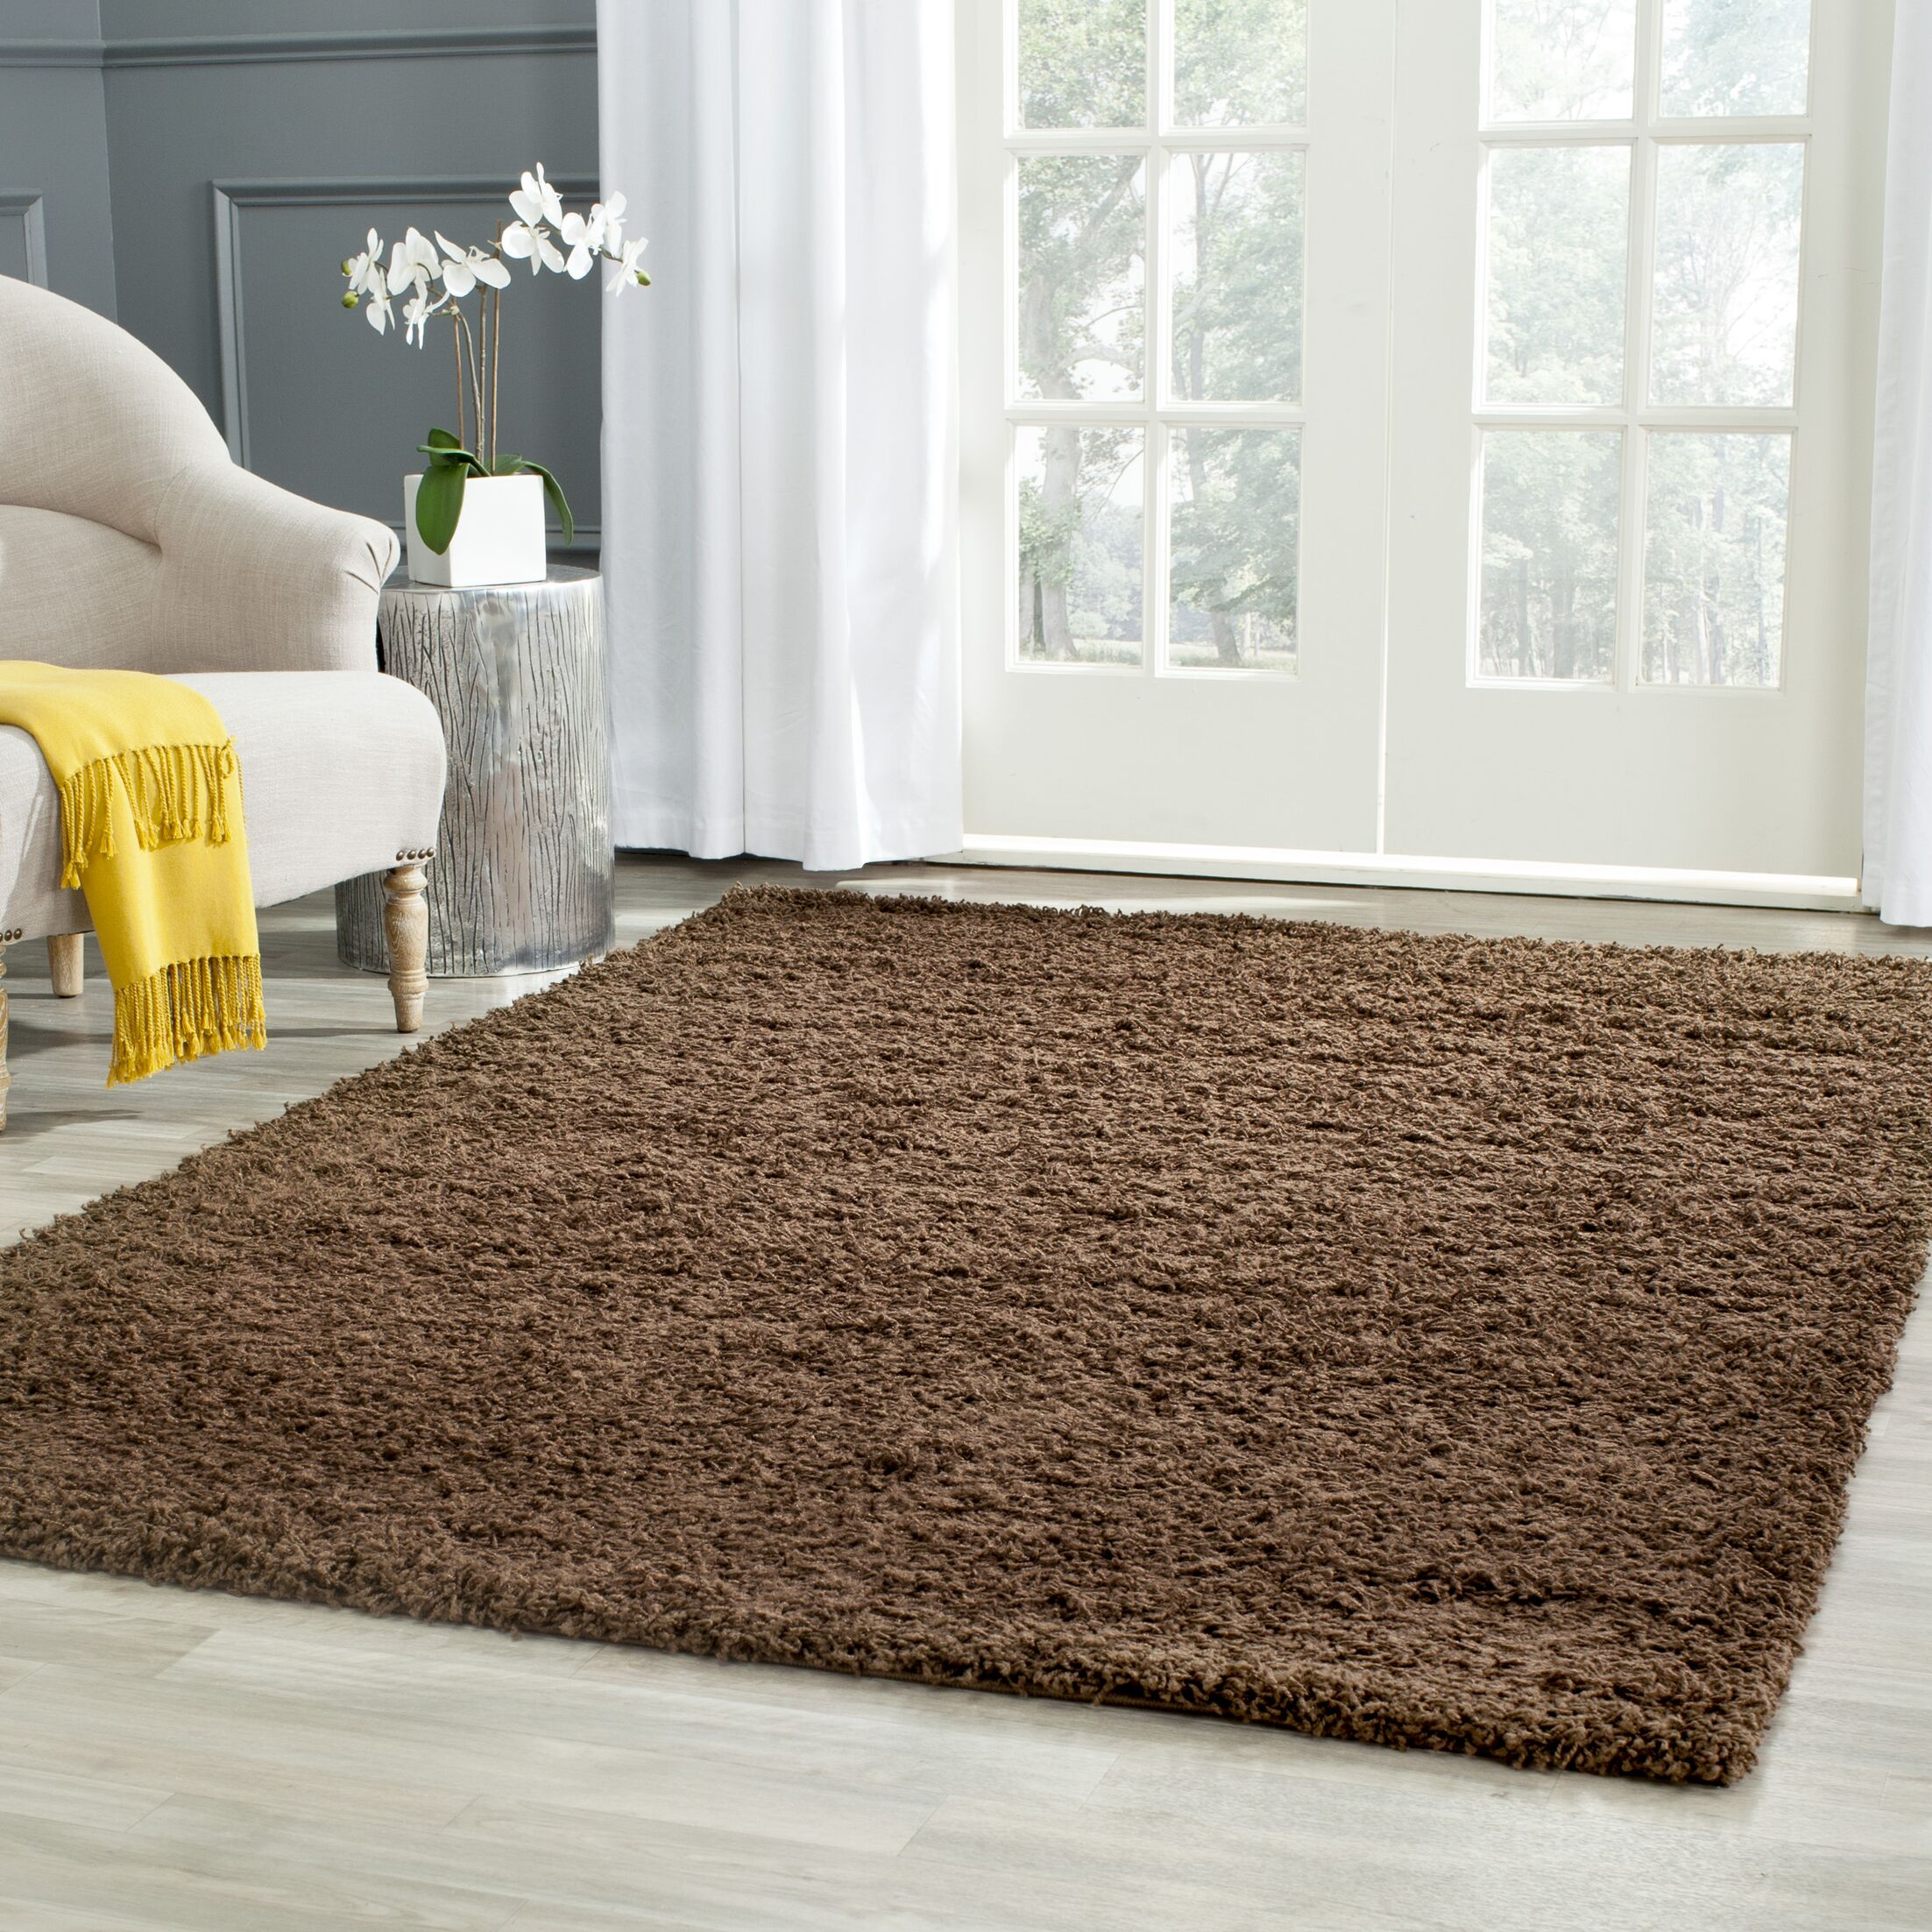 Starr Hill Solid Brown Area Rug Rug Size: Rectangle 5'1